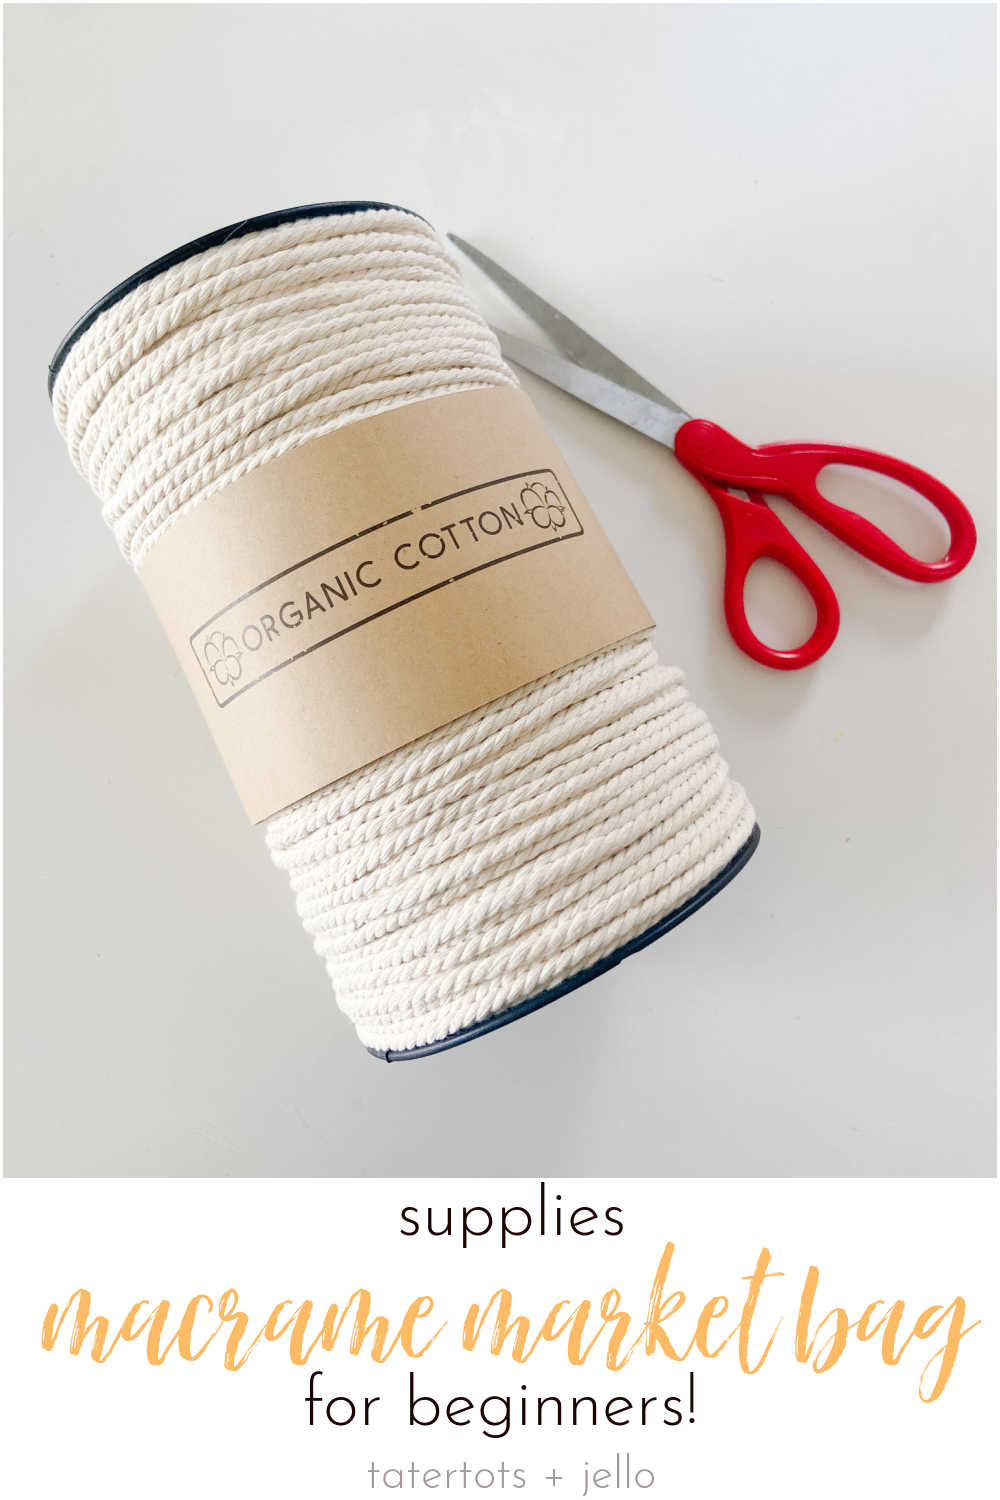 Make a Macrame Market Bag for Beginners! One of the best parts of spring and summer is fresh produce at the farmer's market. Make an easy macrame market bag with this easy DIY!